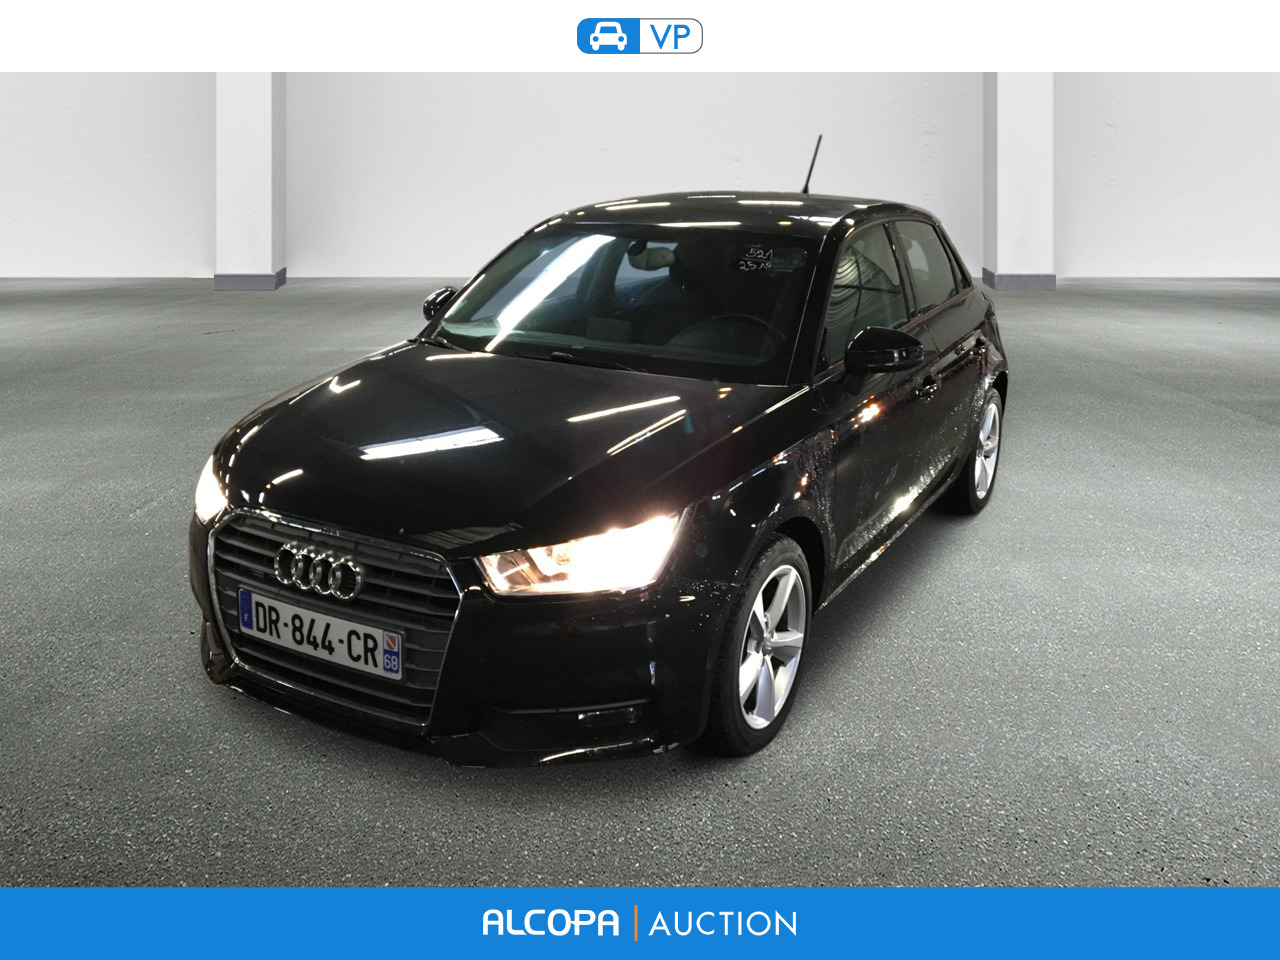 audi a1 a1 sportback 1 4 tdi 90ch ultra ambiente alcopa auction. Black Bedroom Furniture Sets. Home Design Ideas